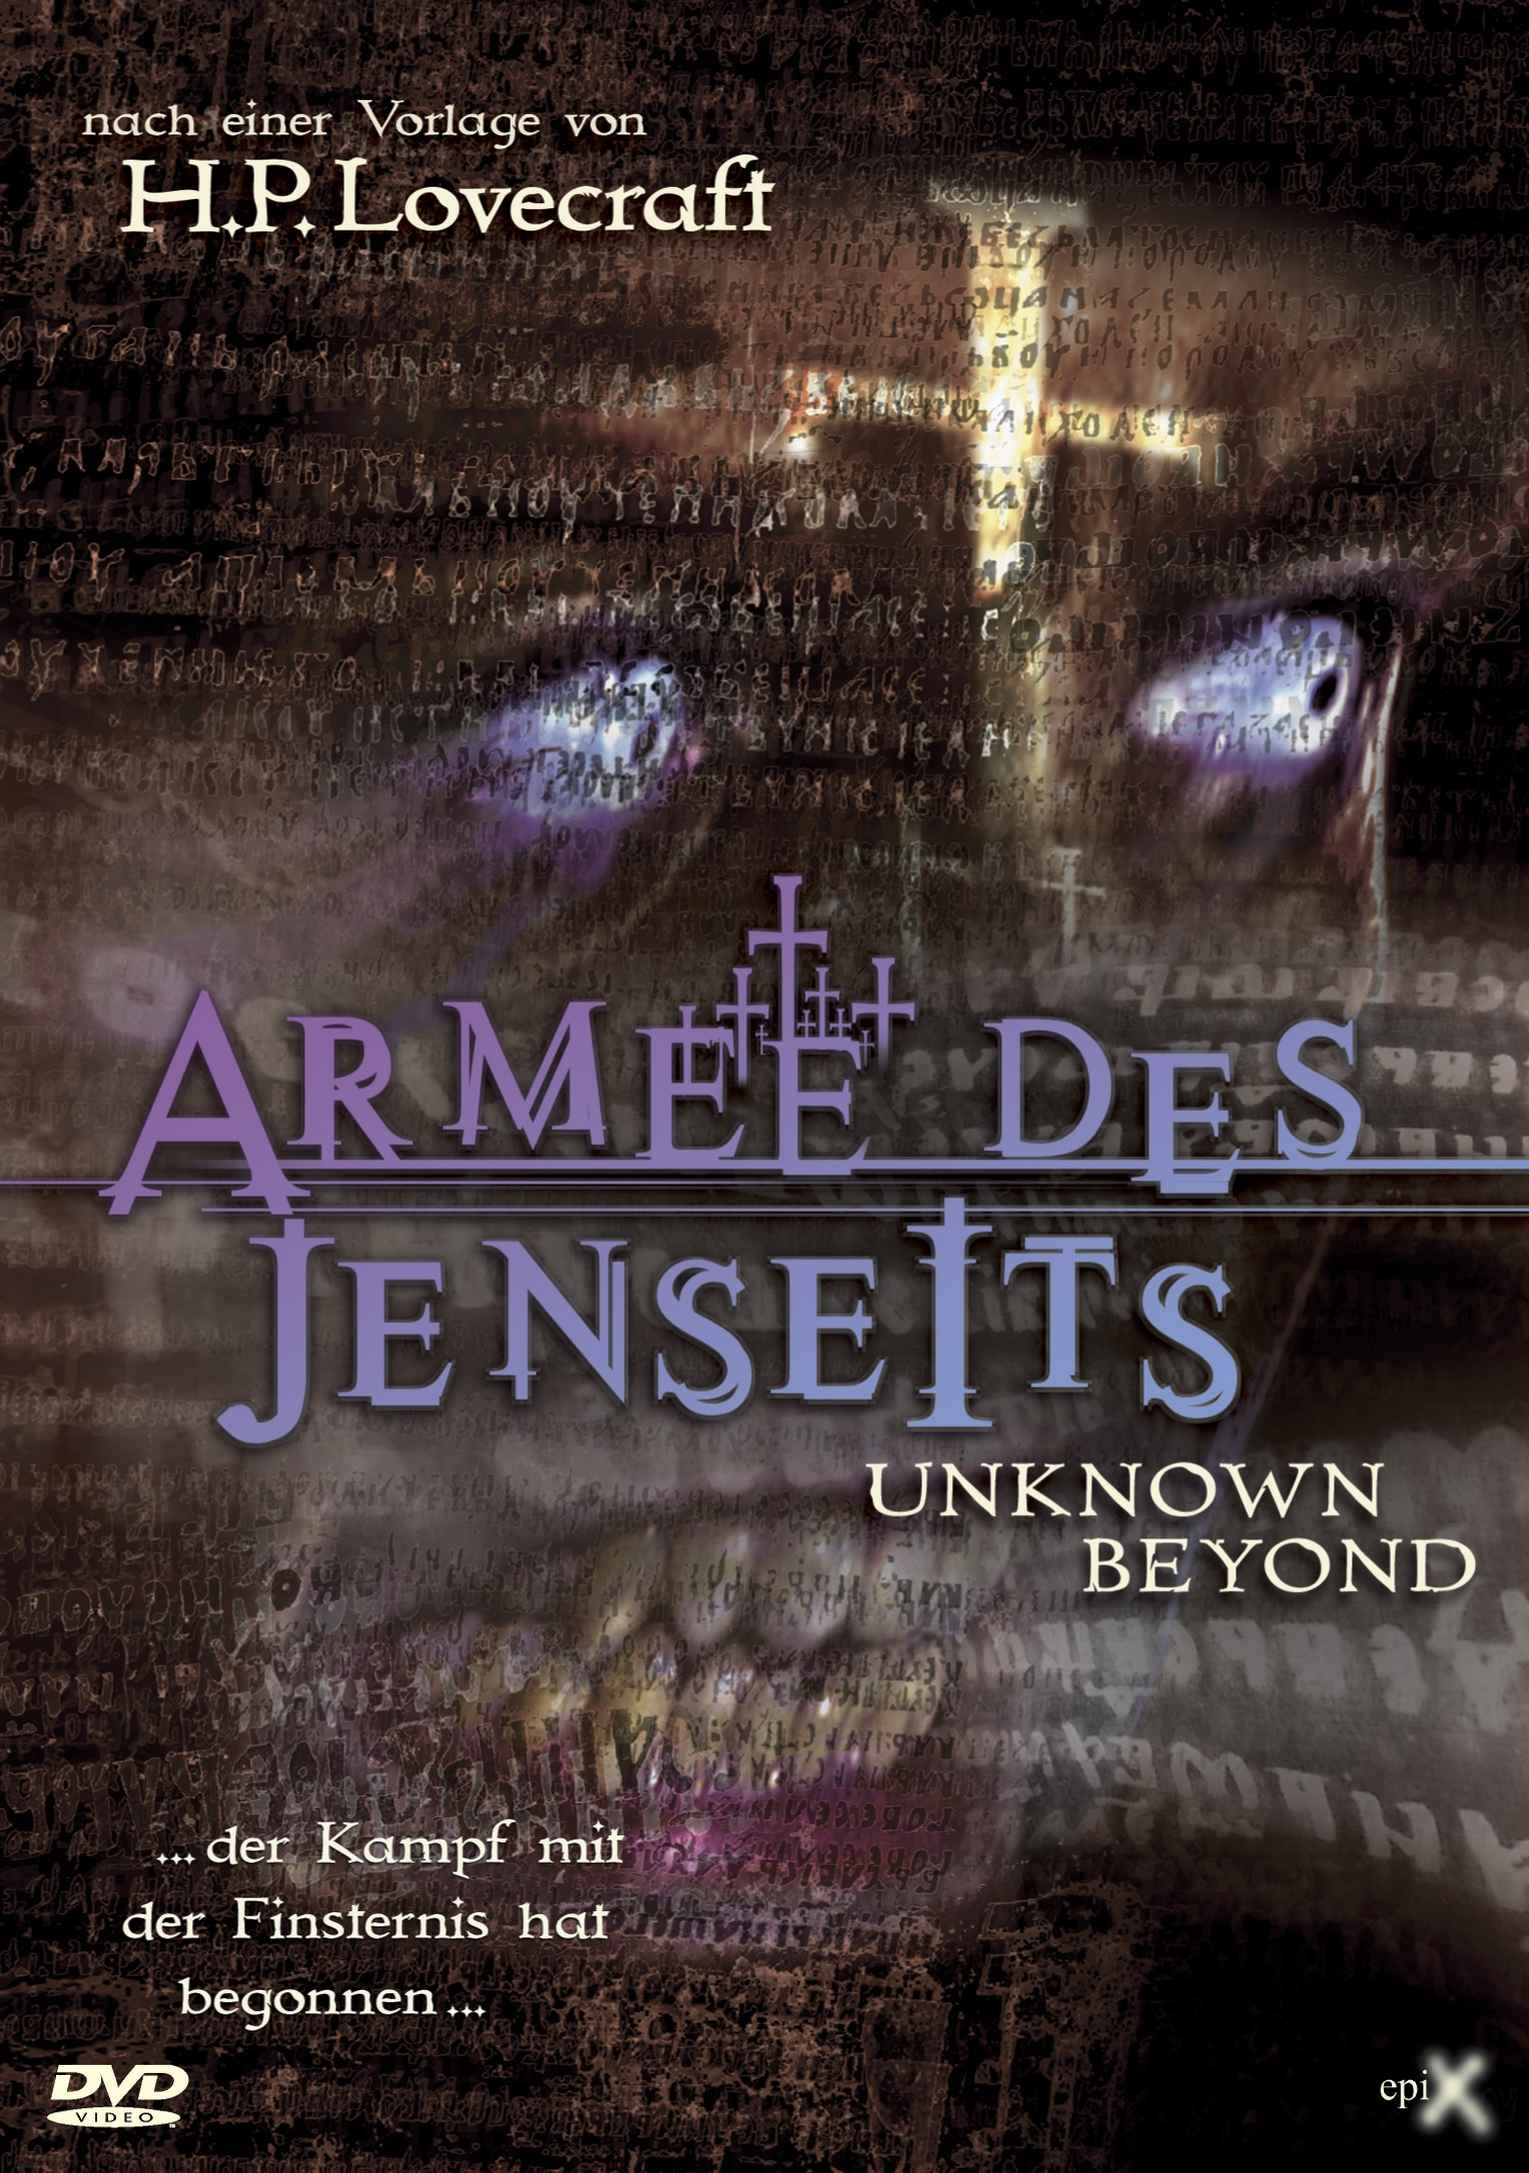 ARMEE DES JENSEITS FINAL FRONT DVD